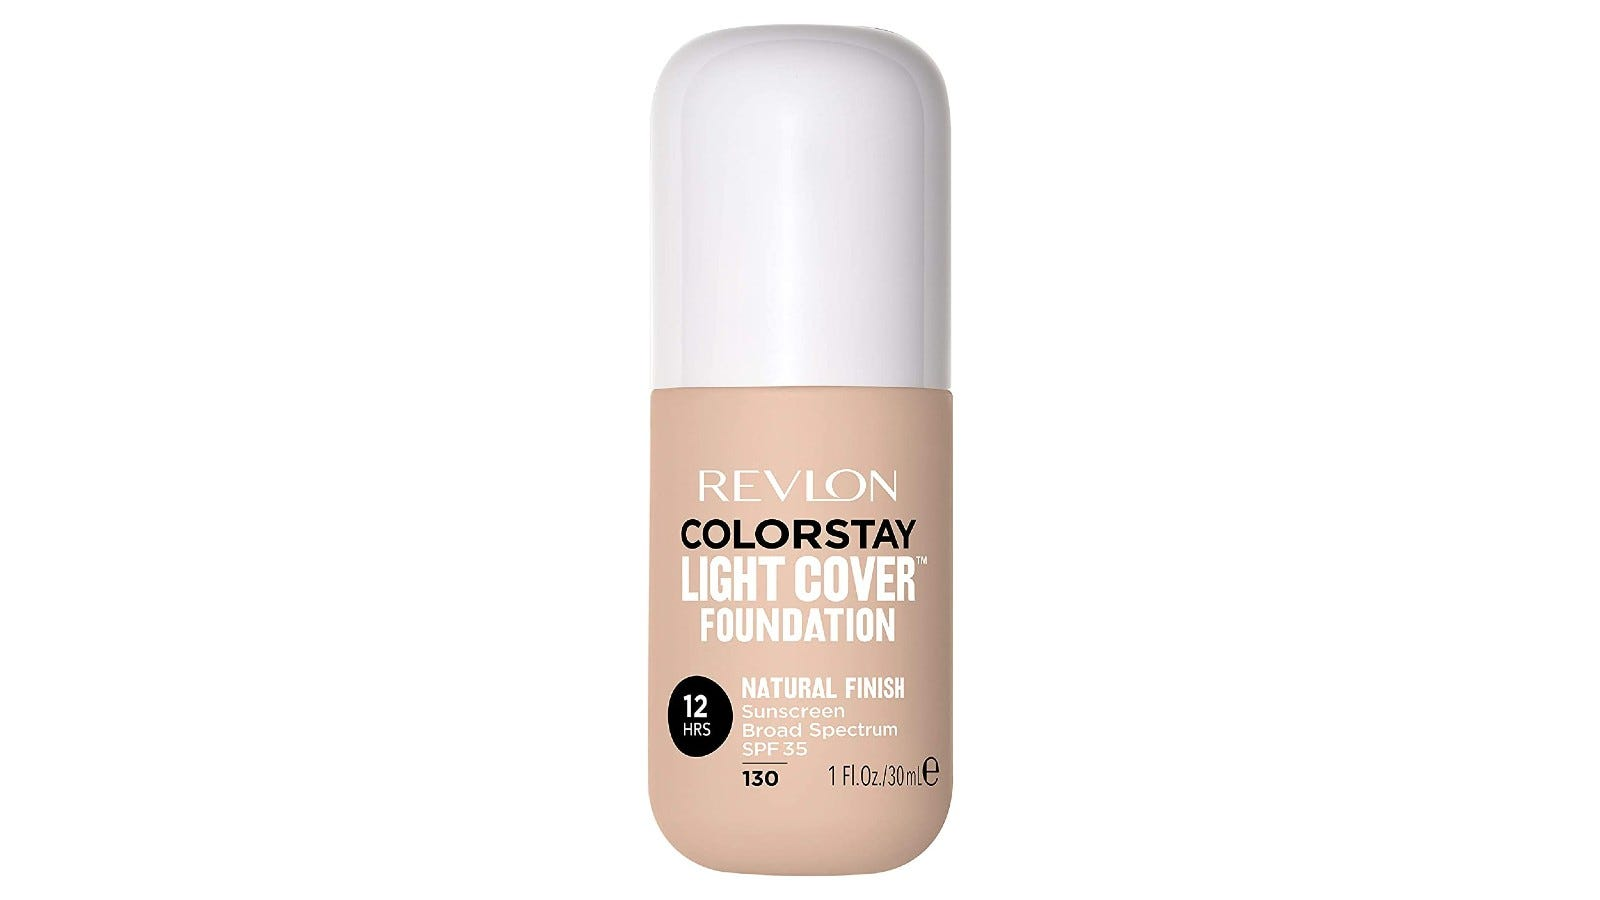 bottle of Revlon Colorstay foundation with white top